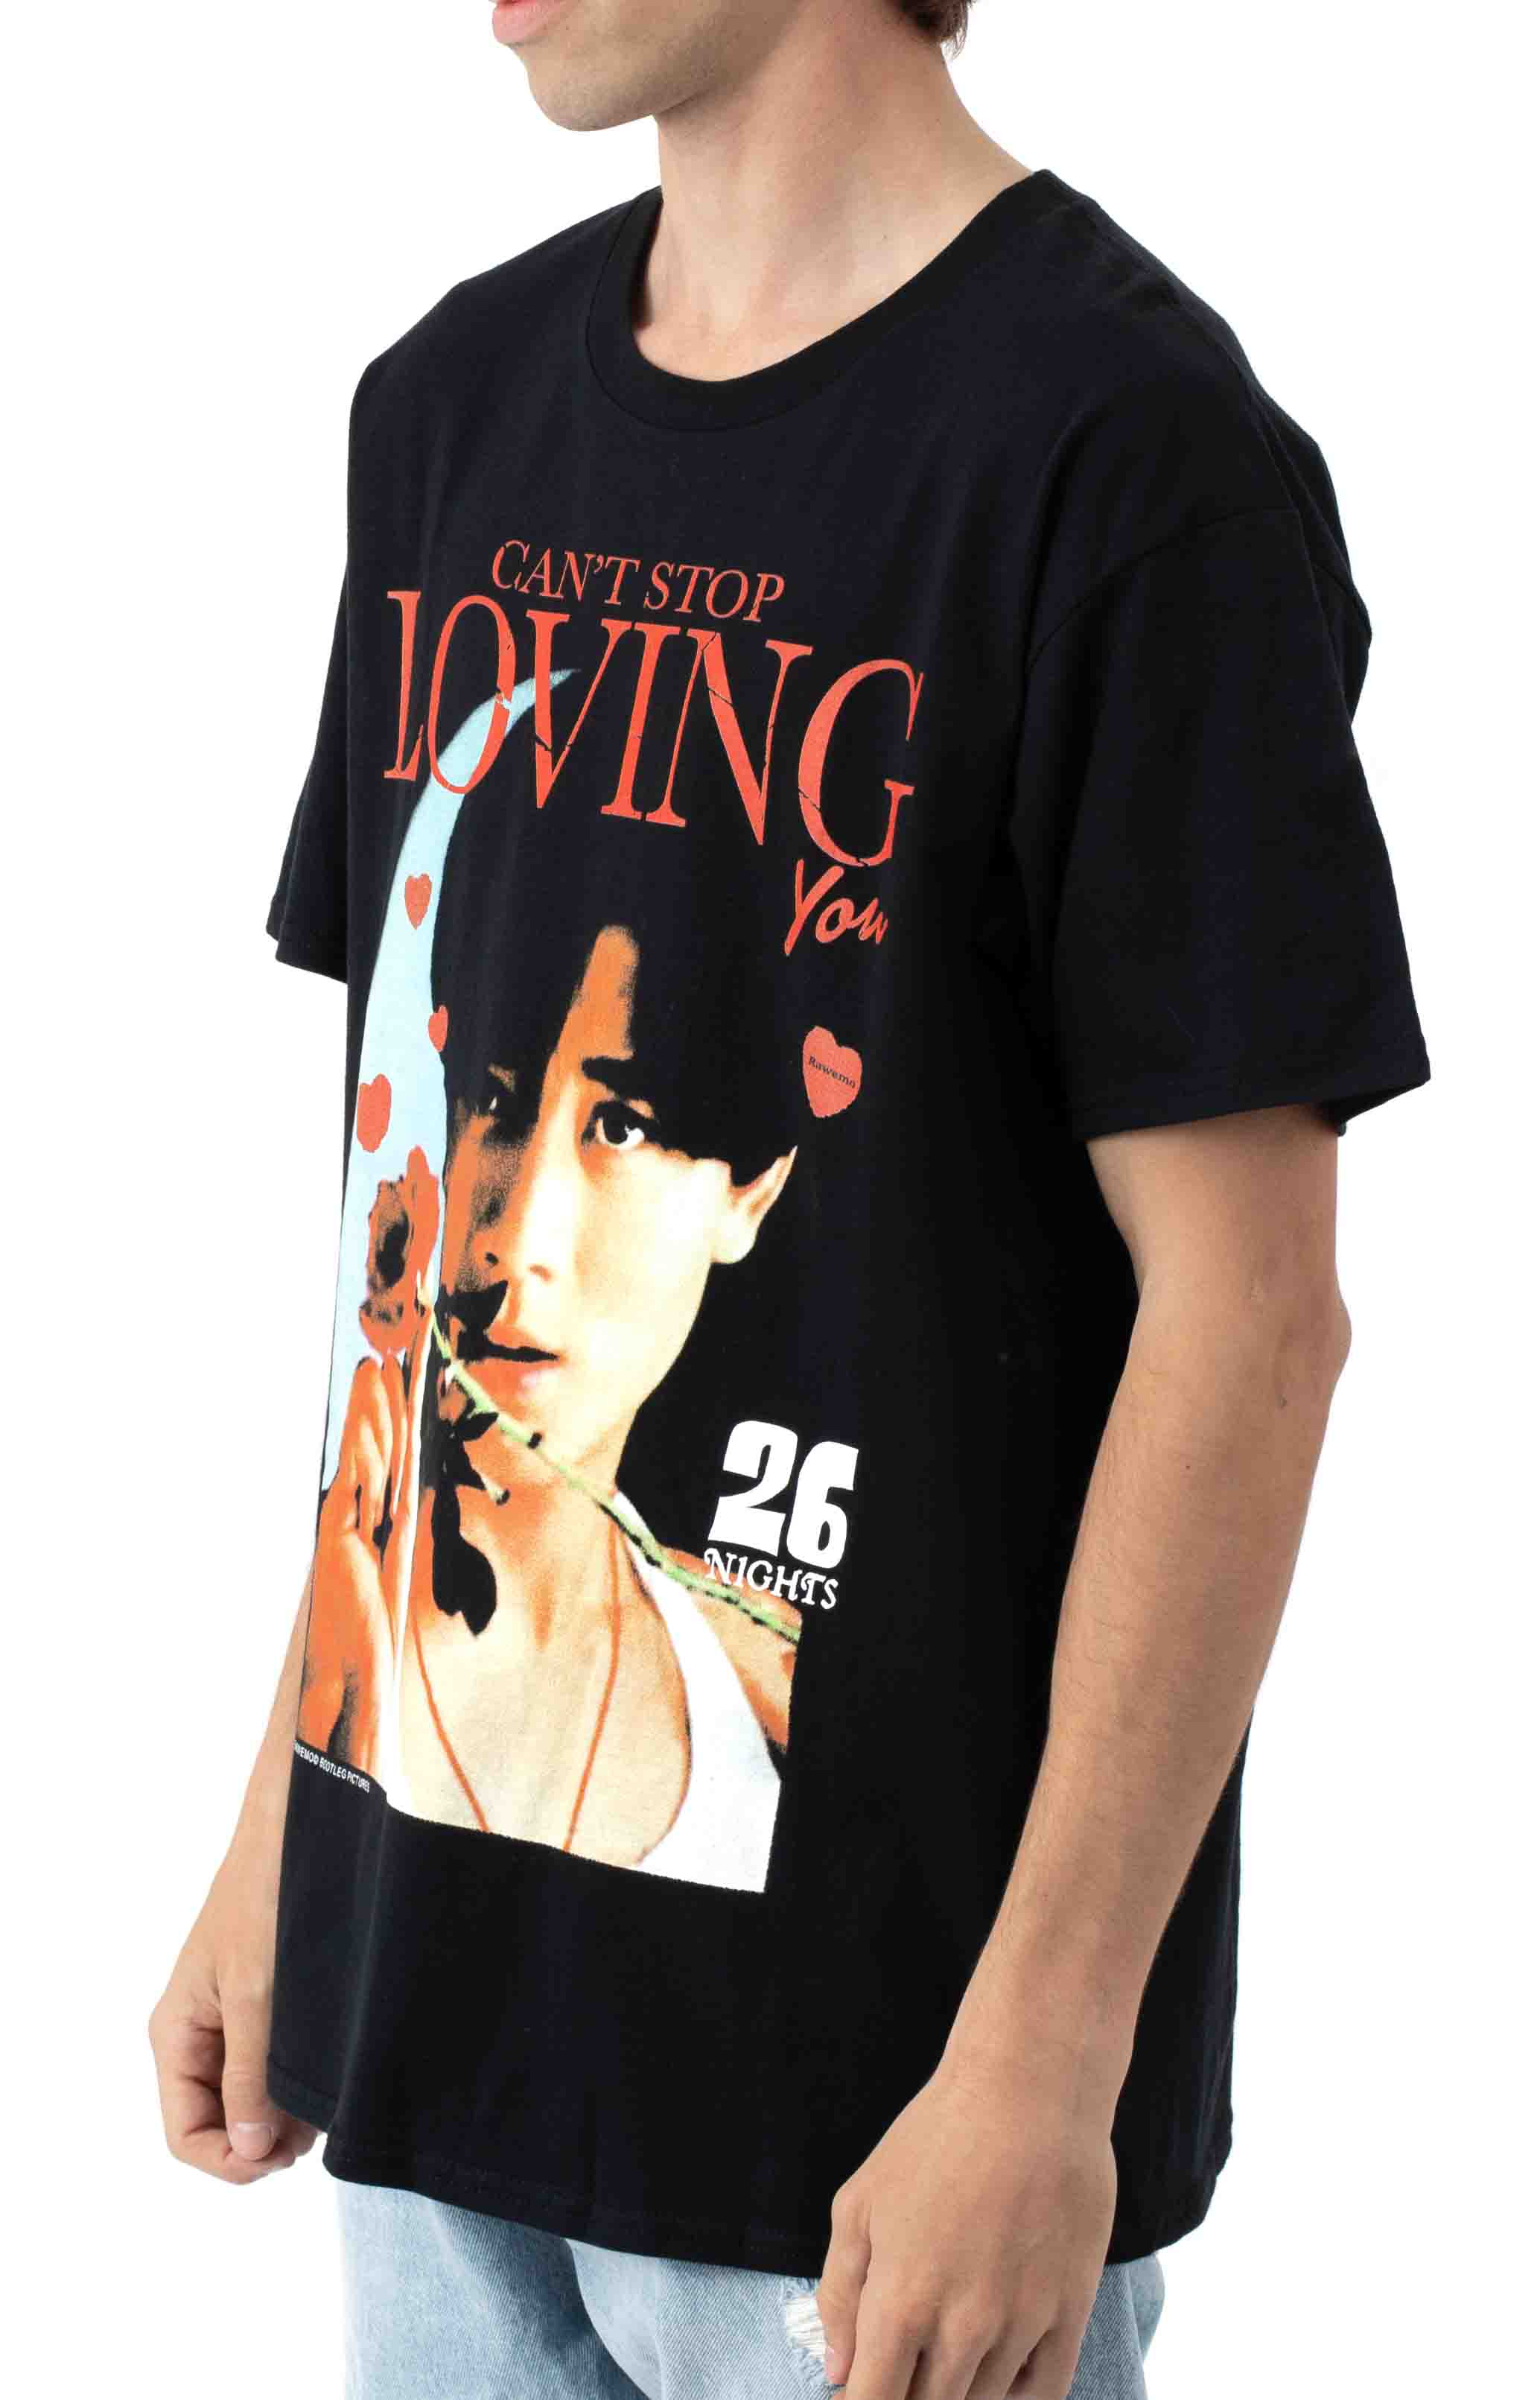 Can't Stop Loving You T-Shirt - Black  2